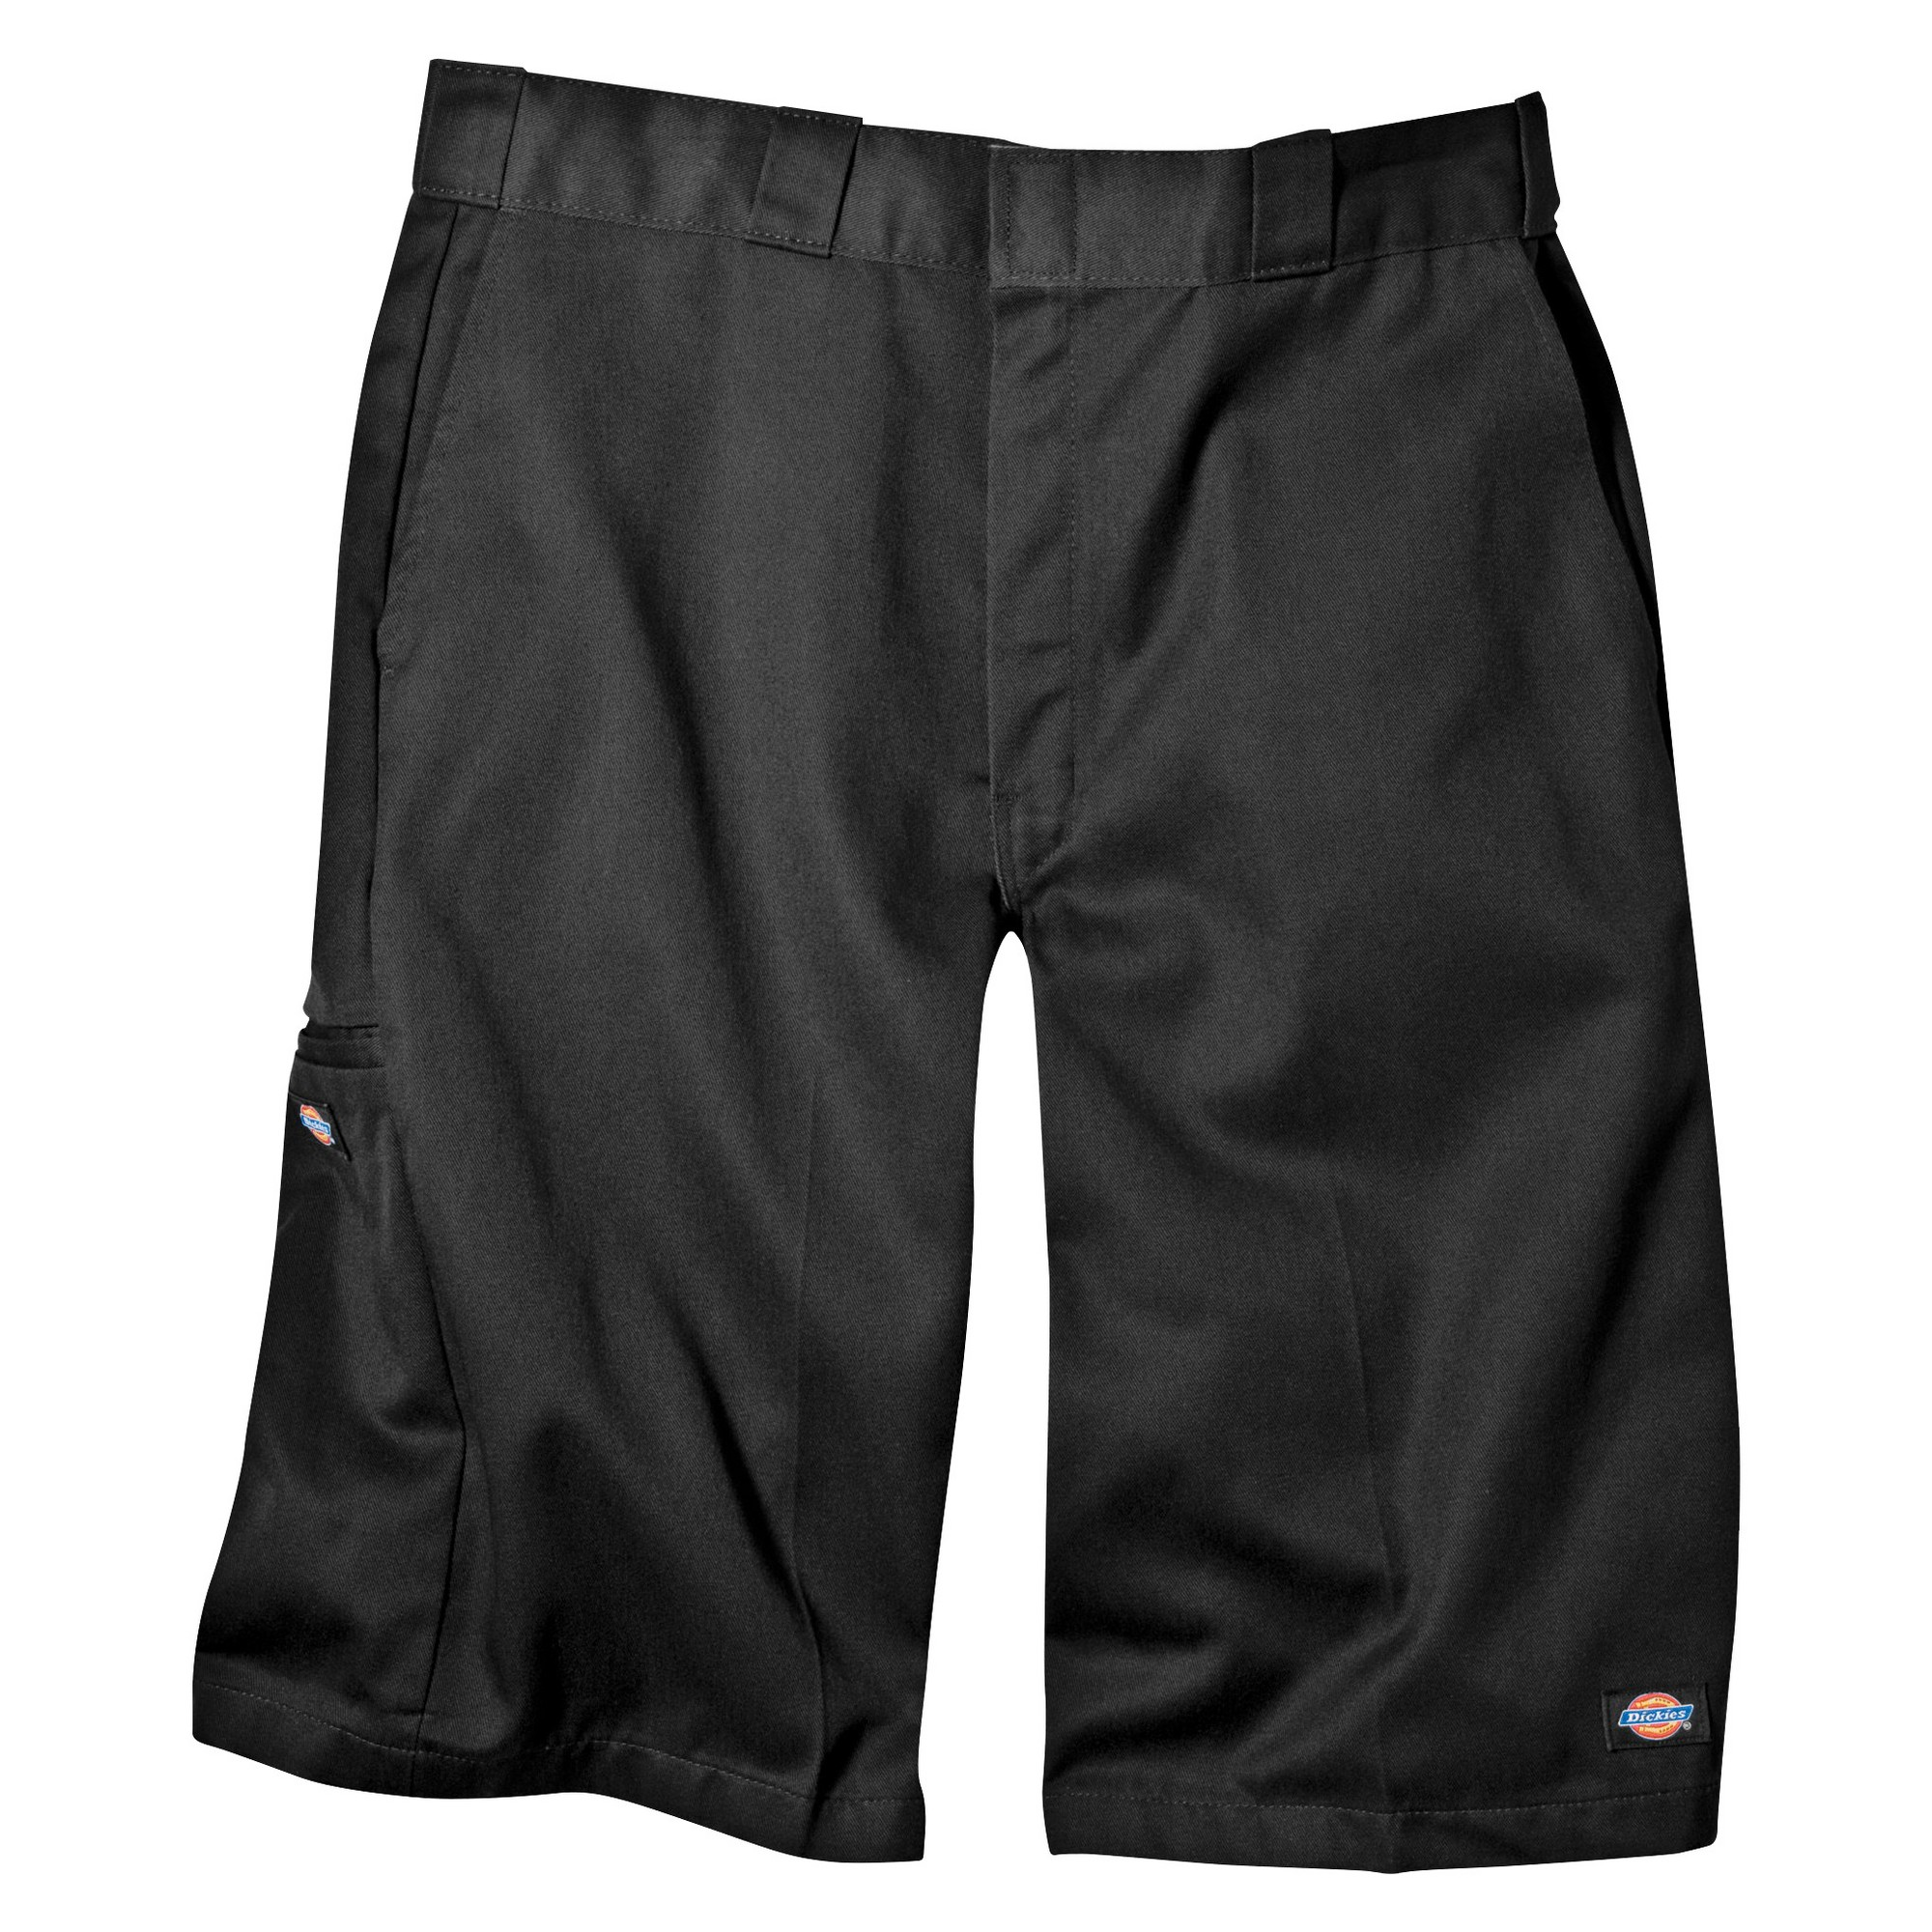 'Dickies Men's Big & Tall Loose Fit Twill 13'' Multi-Pocket Work Shorts- Black 50'